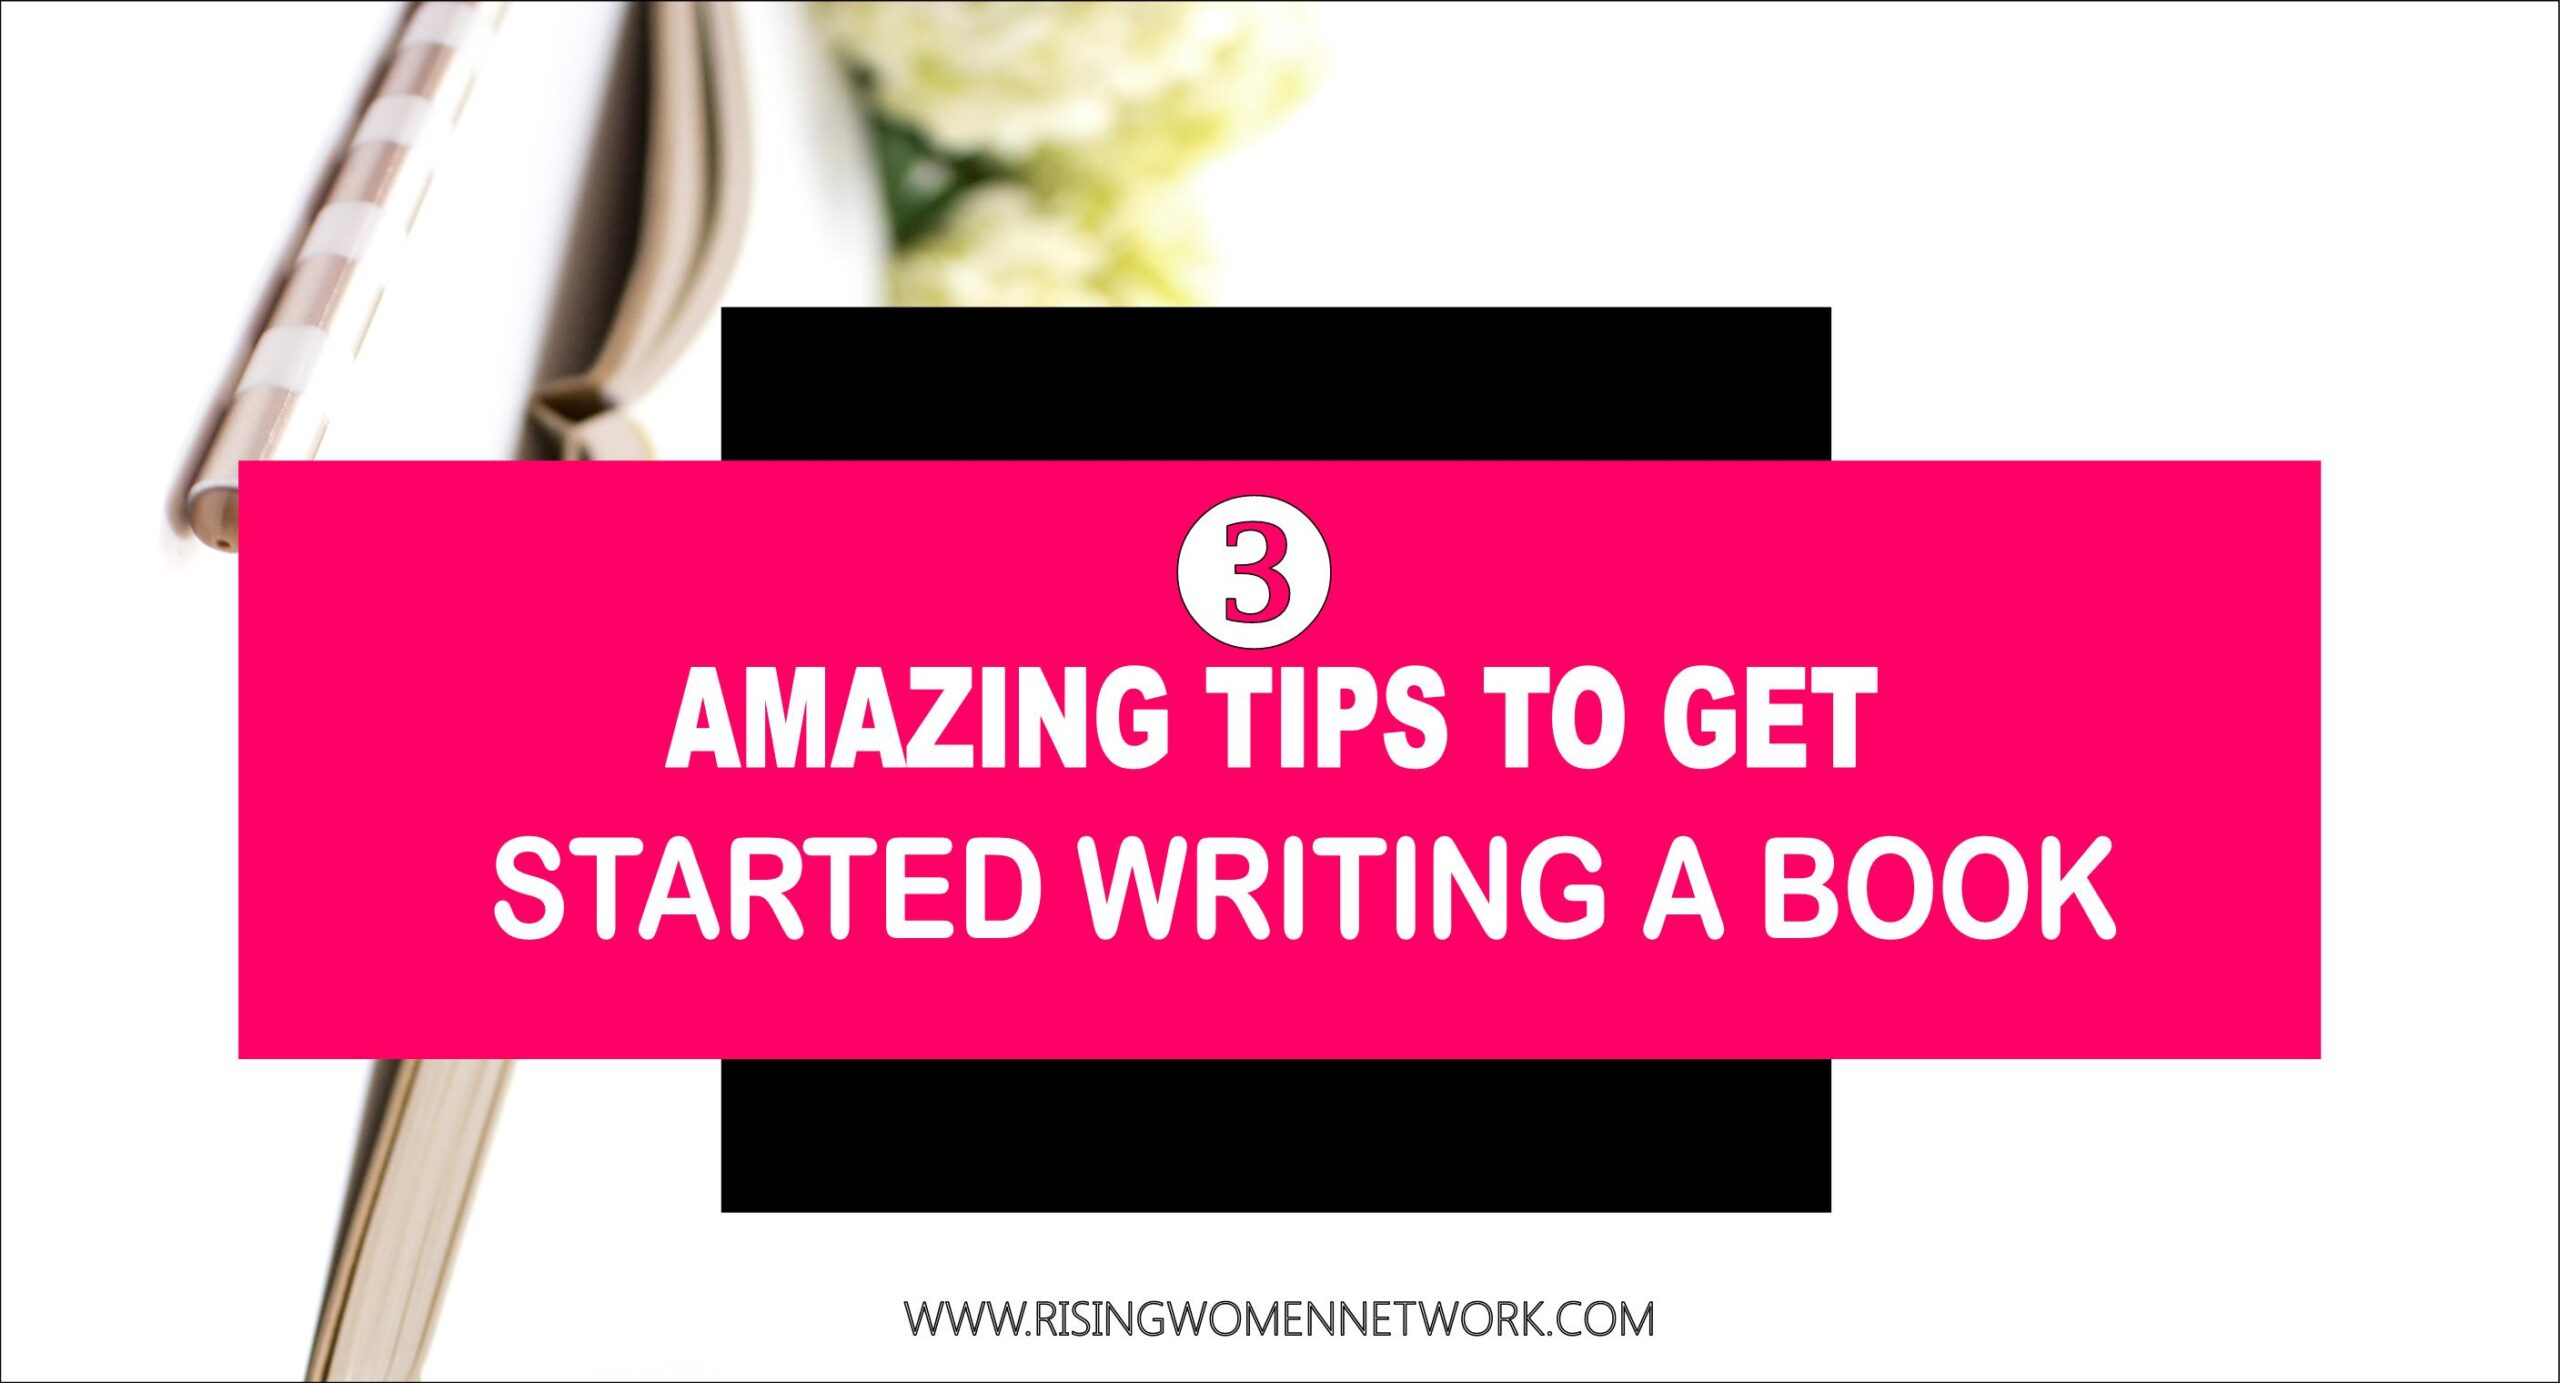 3 AMAZING TIPS TO GET STARTED WRITING A BOOK